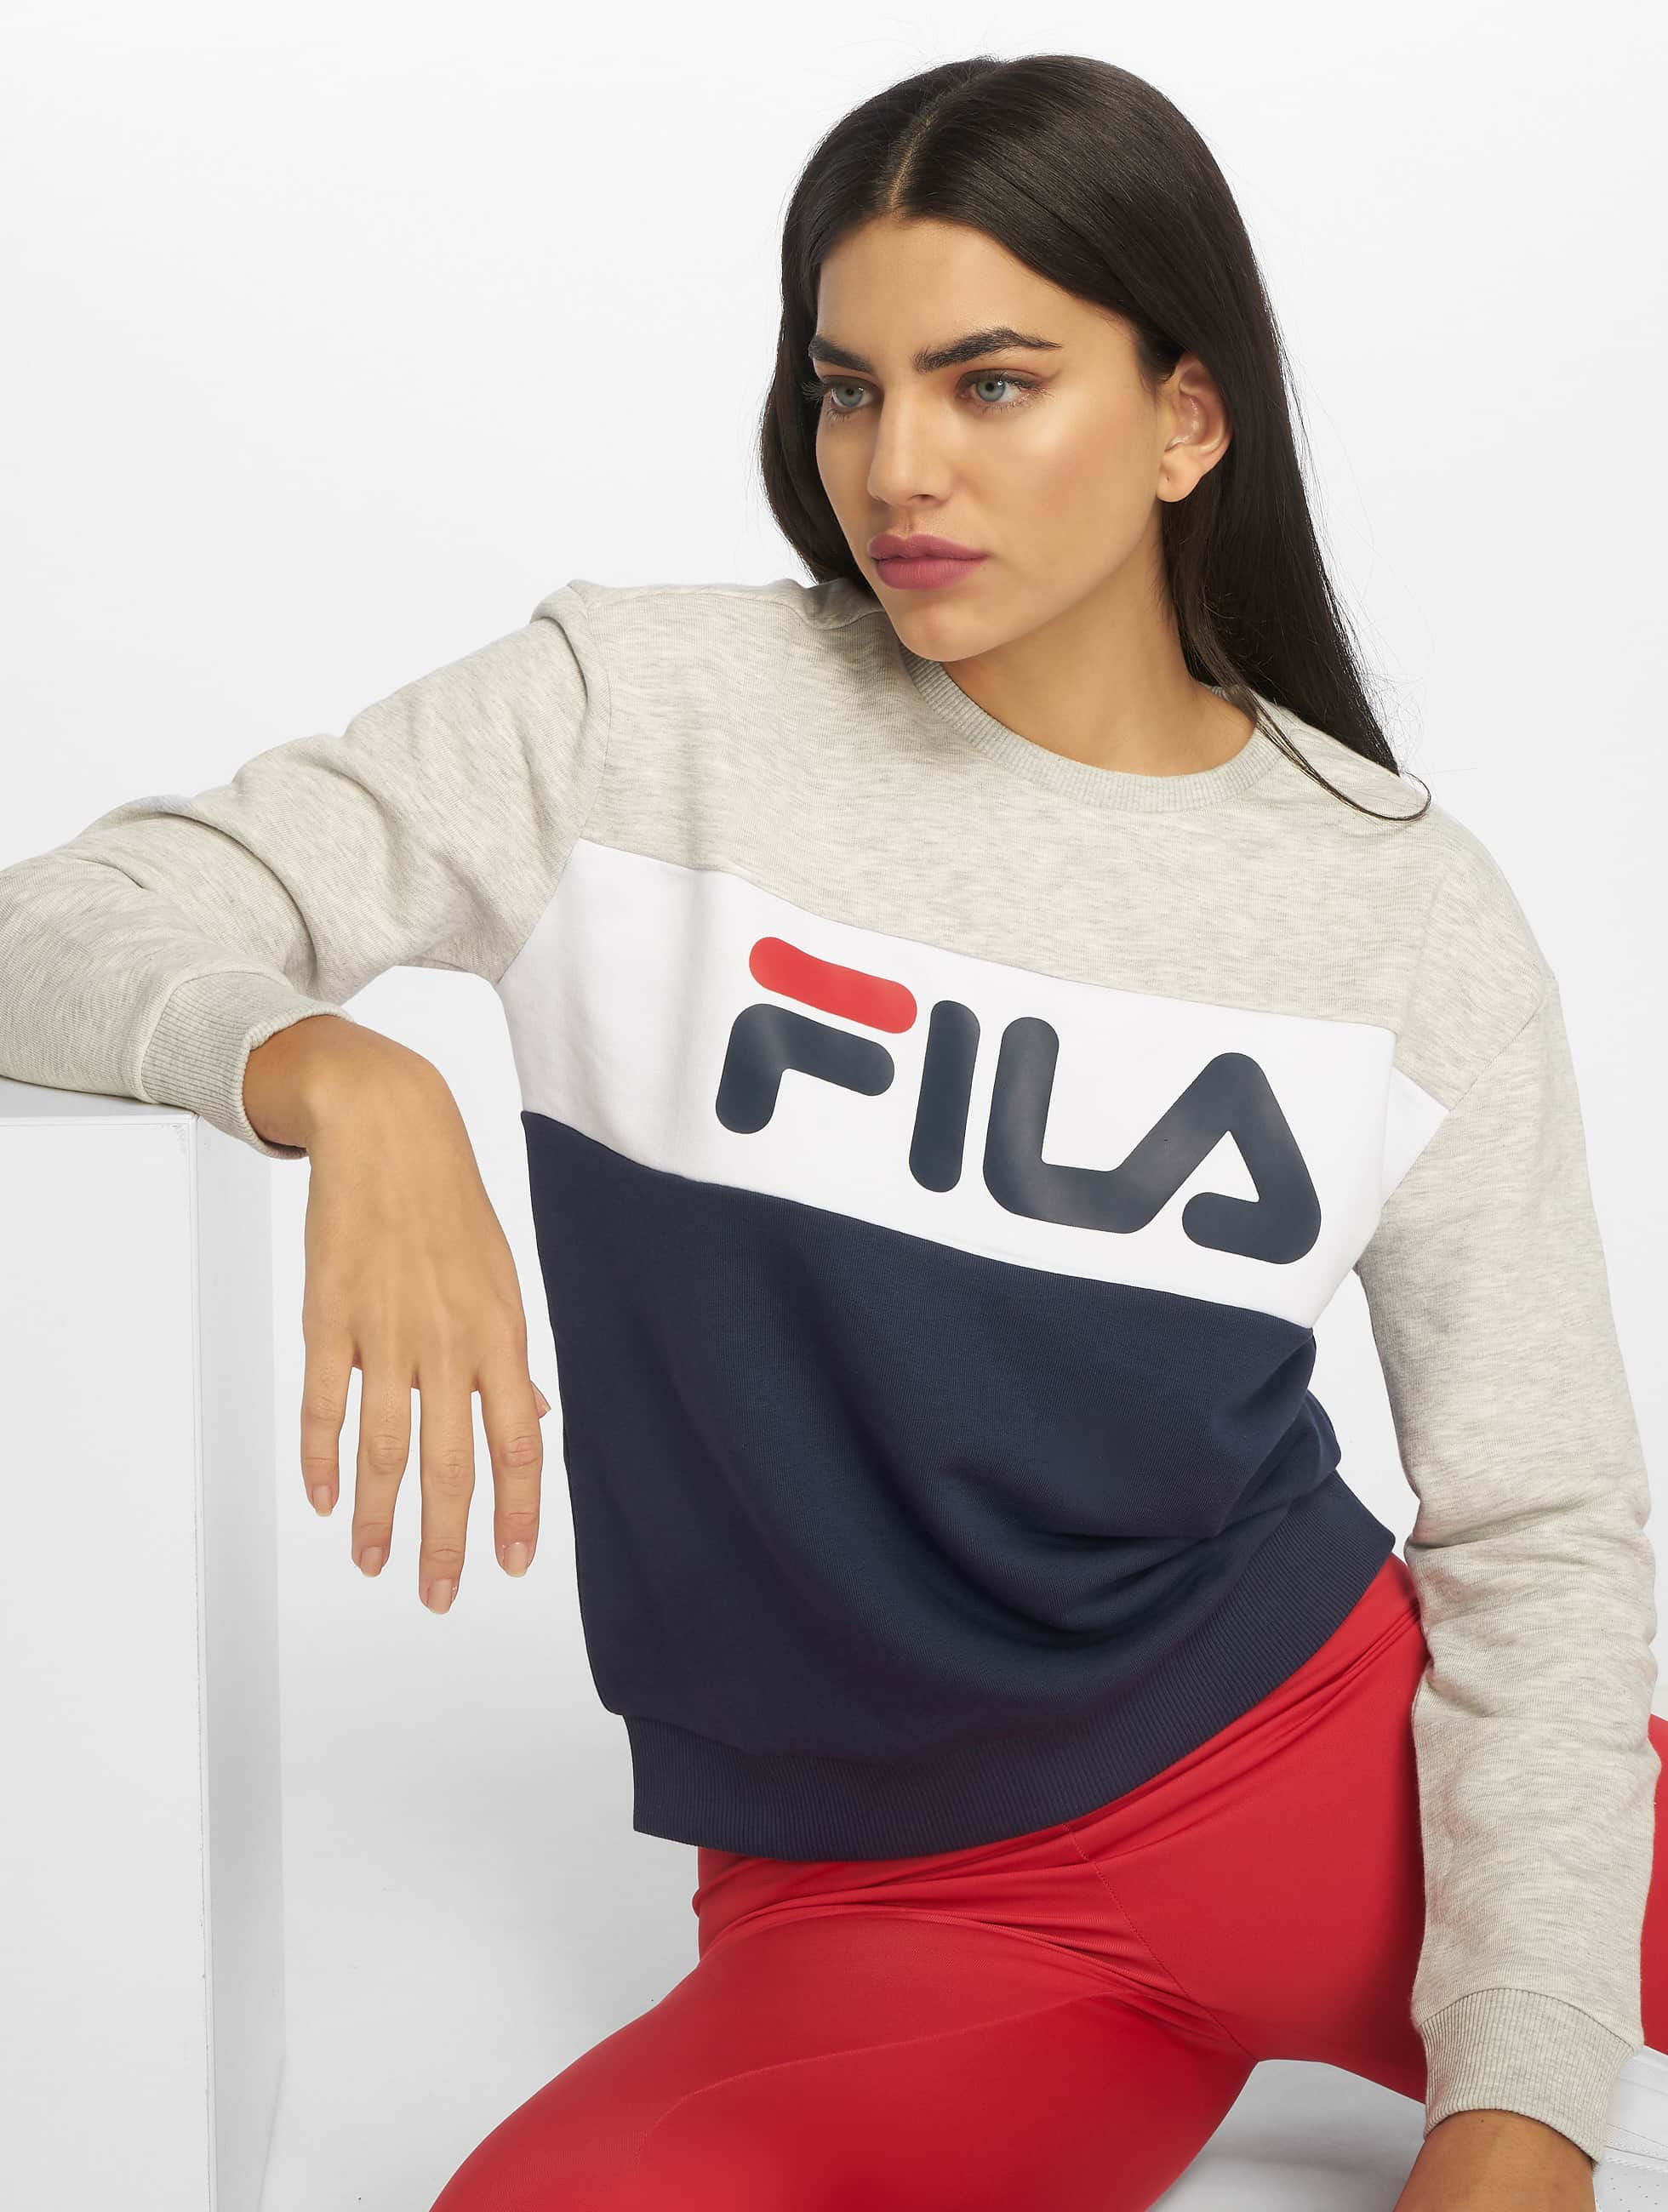 Fila Urban Line Leah Sweatshirt Black IrisLight GreyBright White